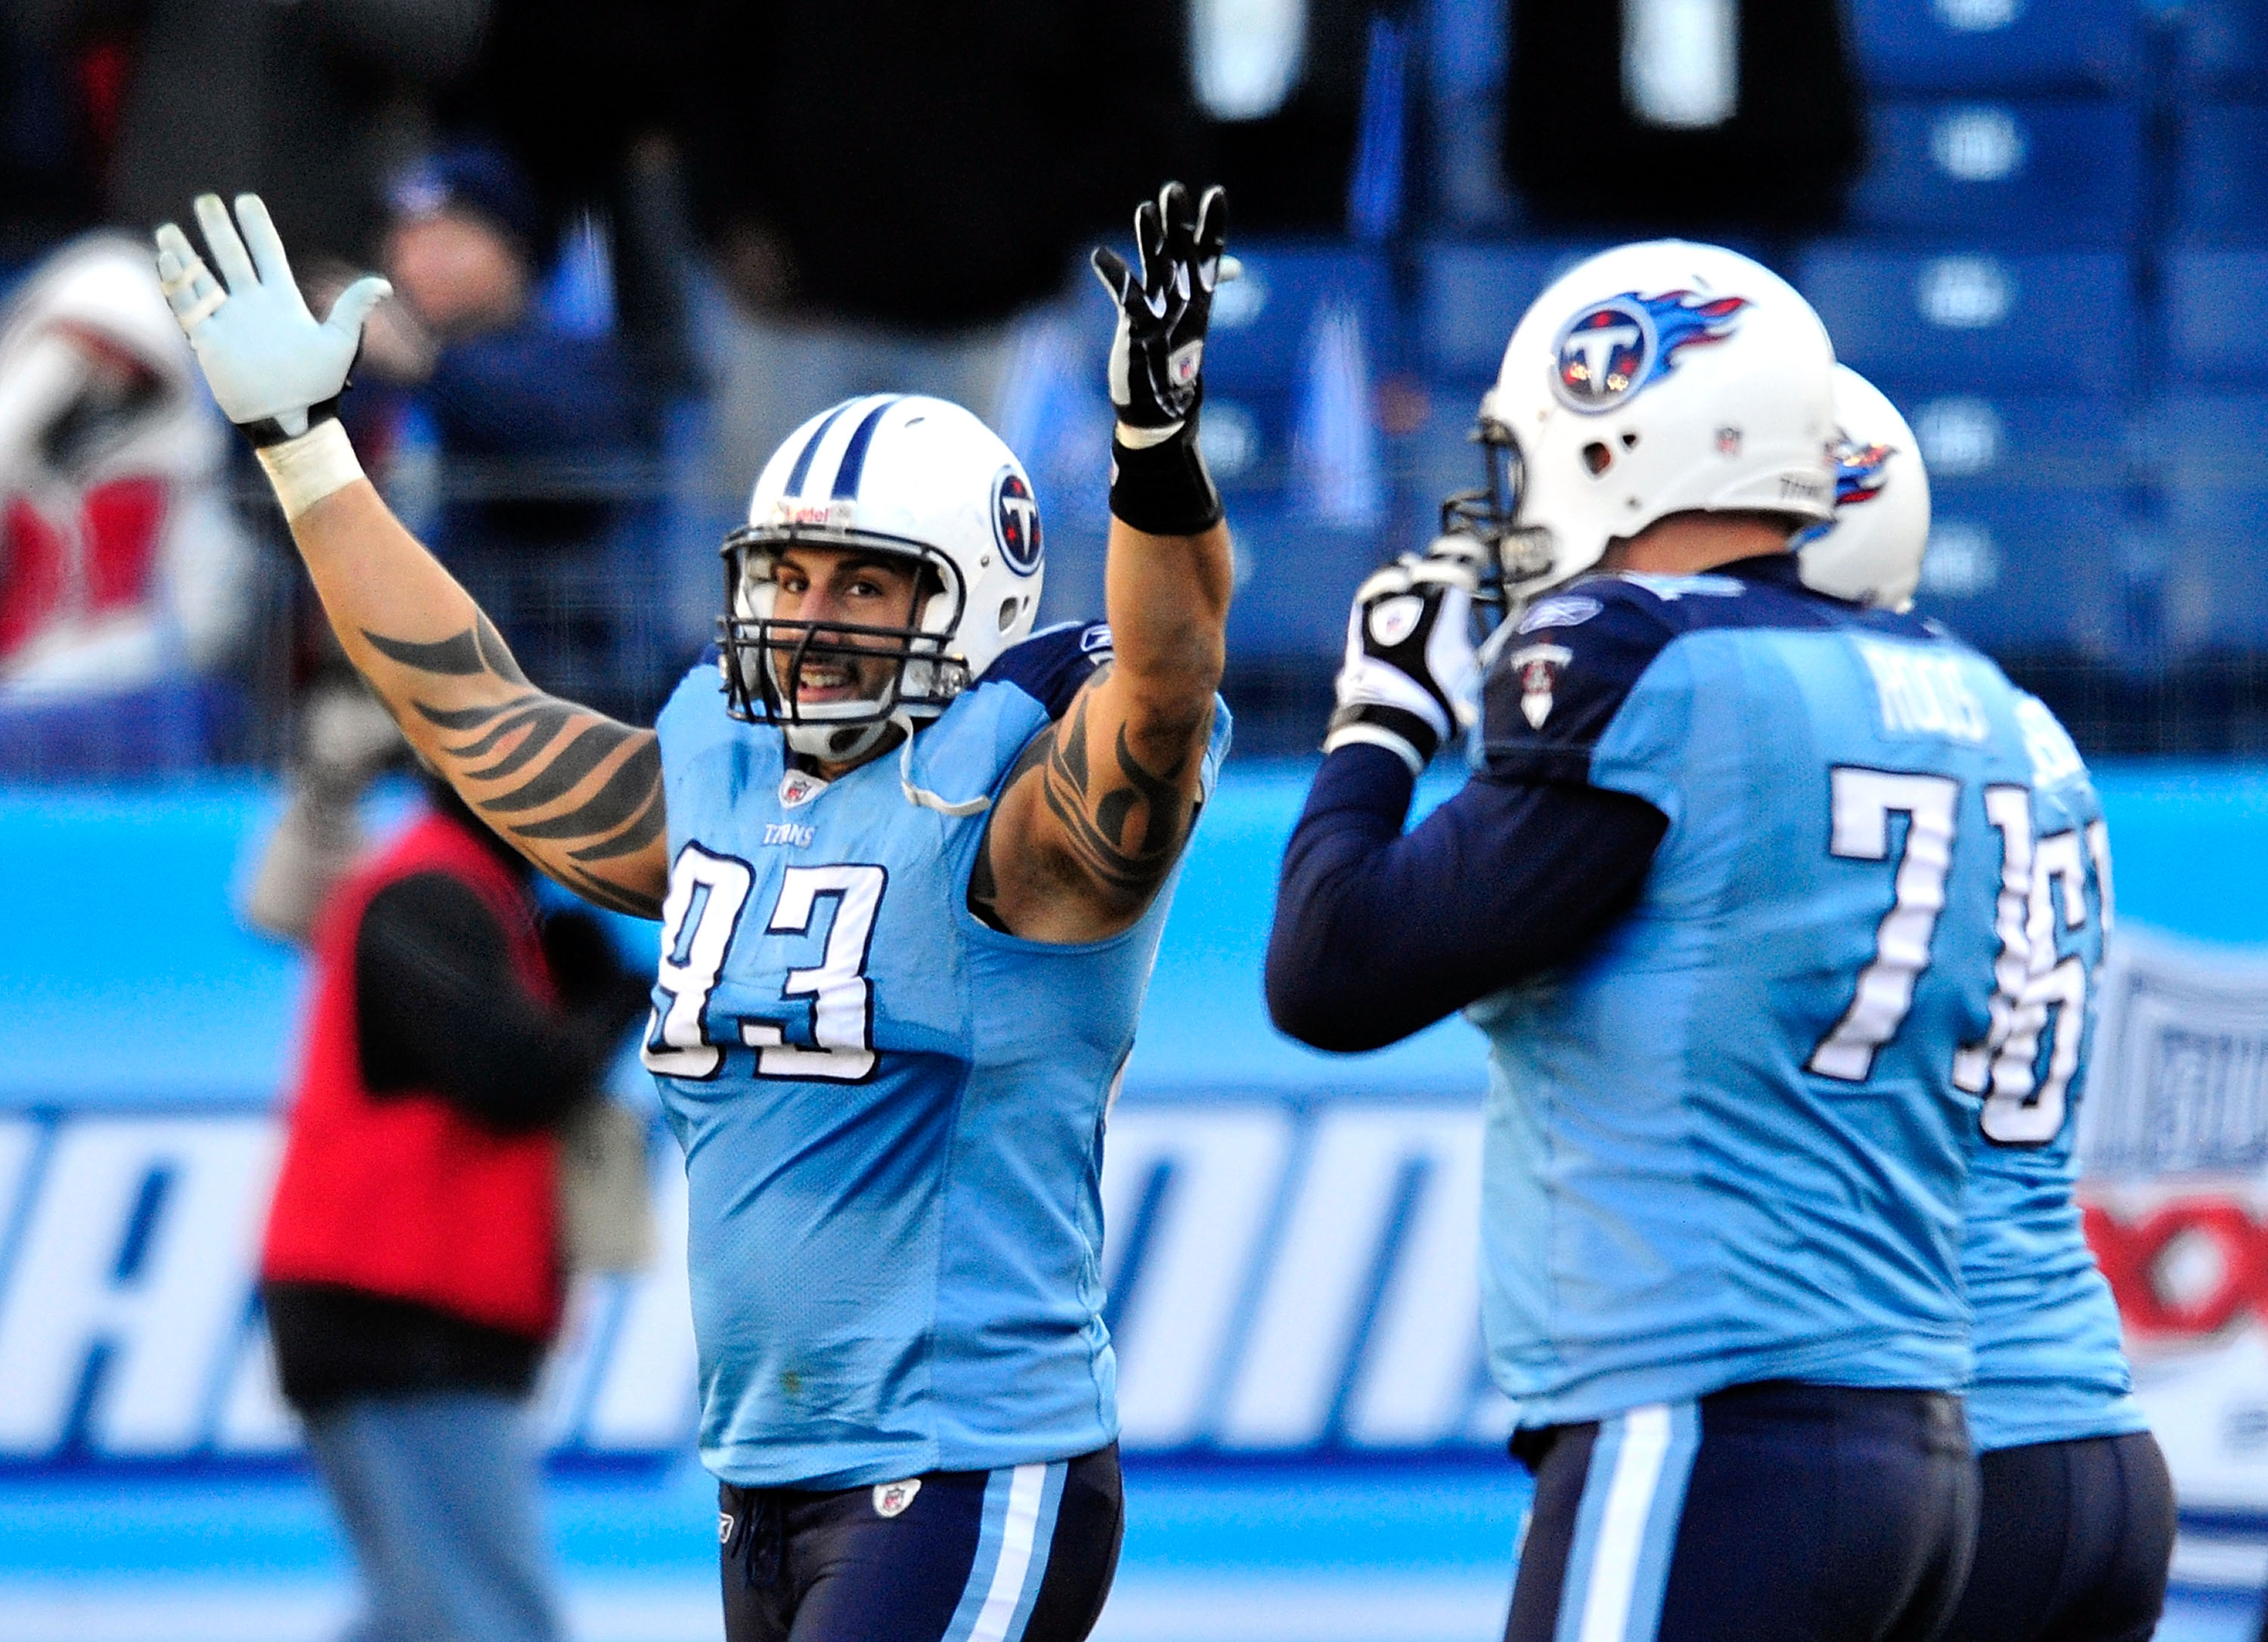 NASHVILLE, TN - DECEMBER 19:  Jason Babin #93 of the Tennessee Titans celebrates after a defensive stop against the Houston Texans to seal the win at LP Field on December 19, 2010 in Nashville, Tennessee. The Titans defeated the Texans, 31-17.  (Photo by